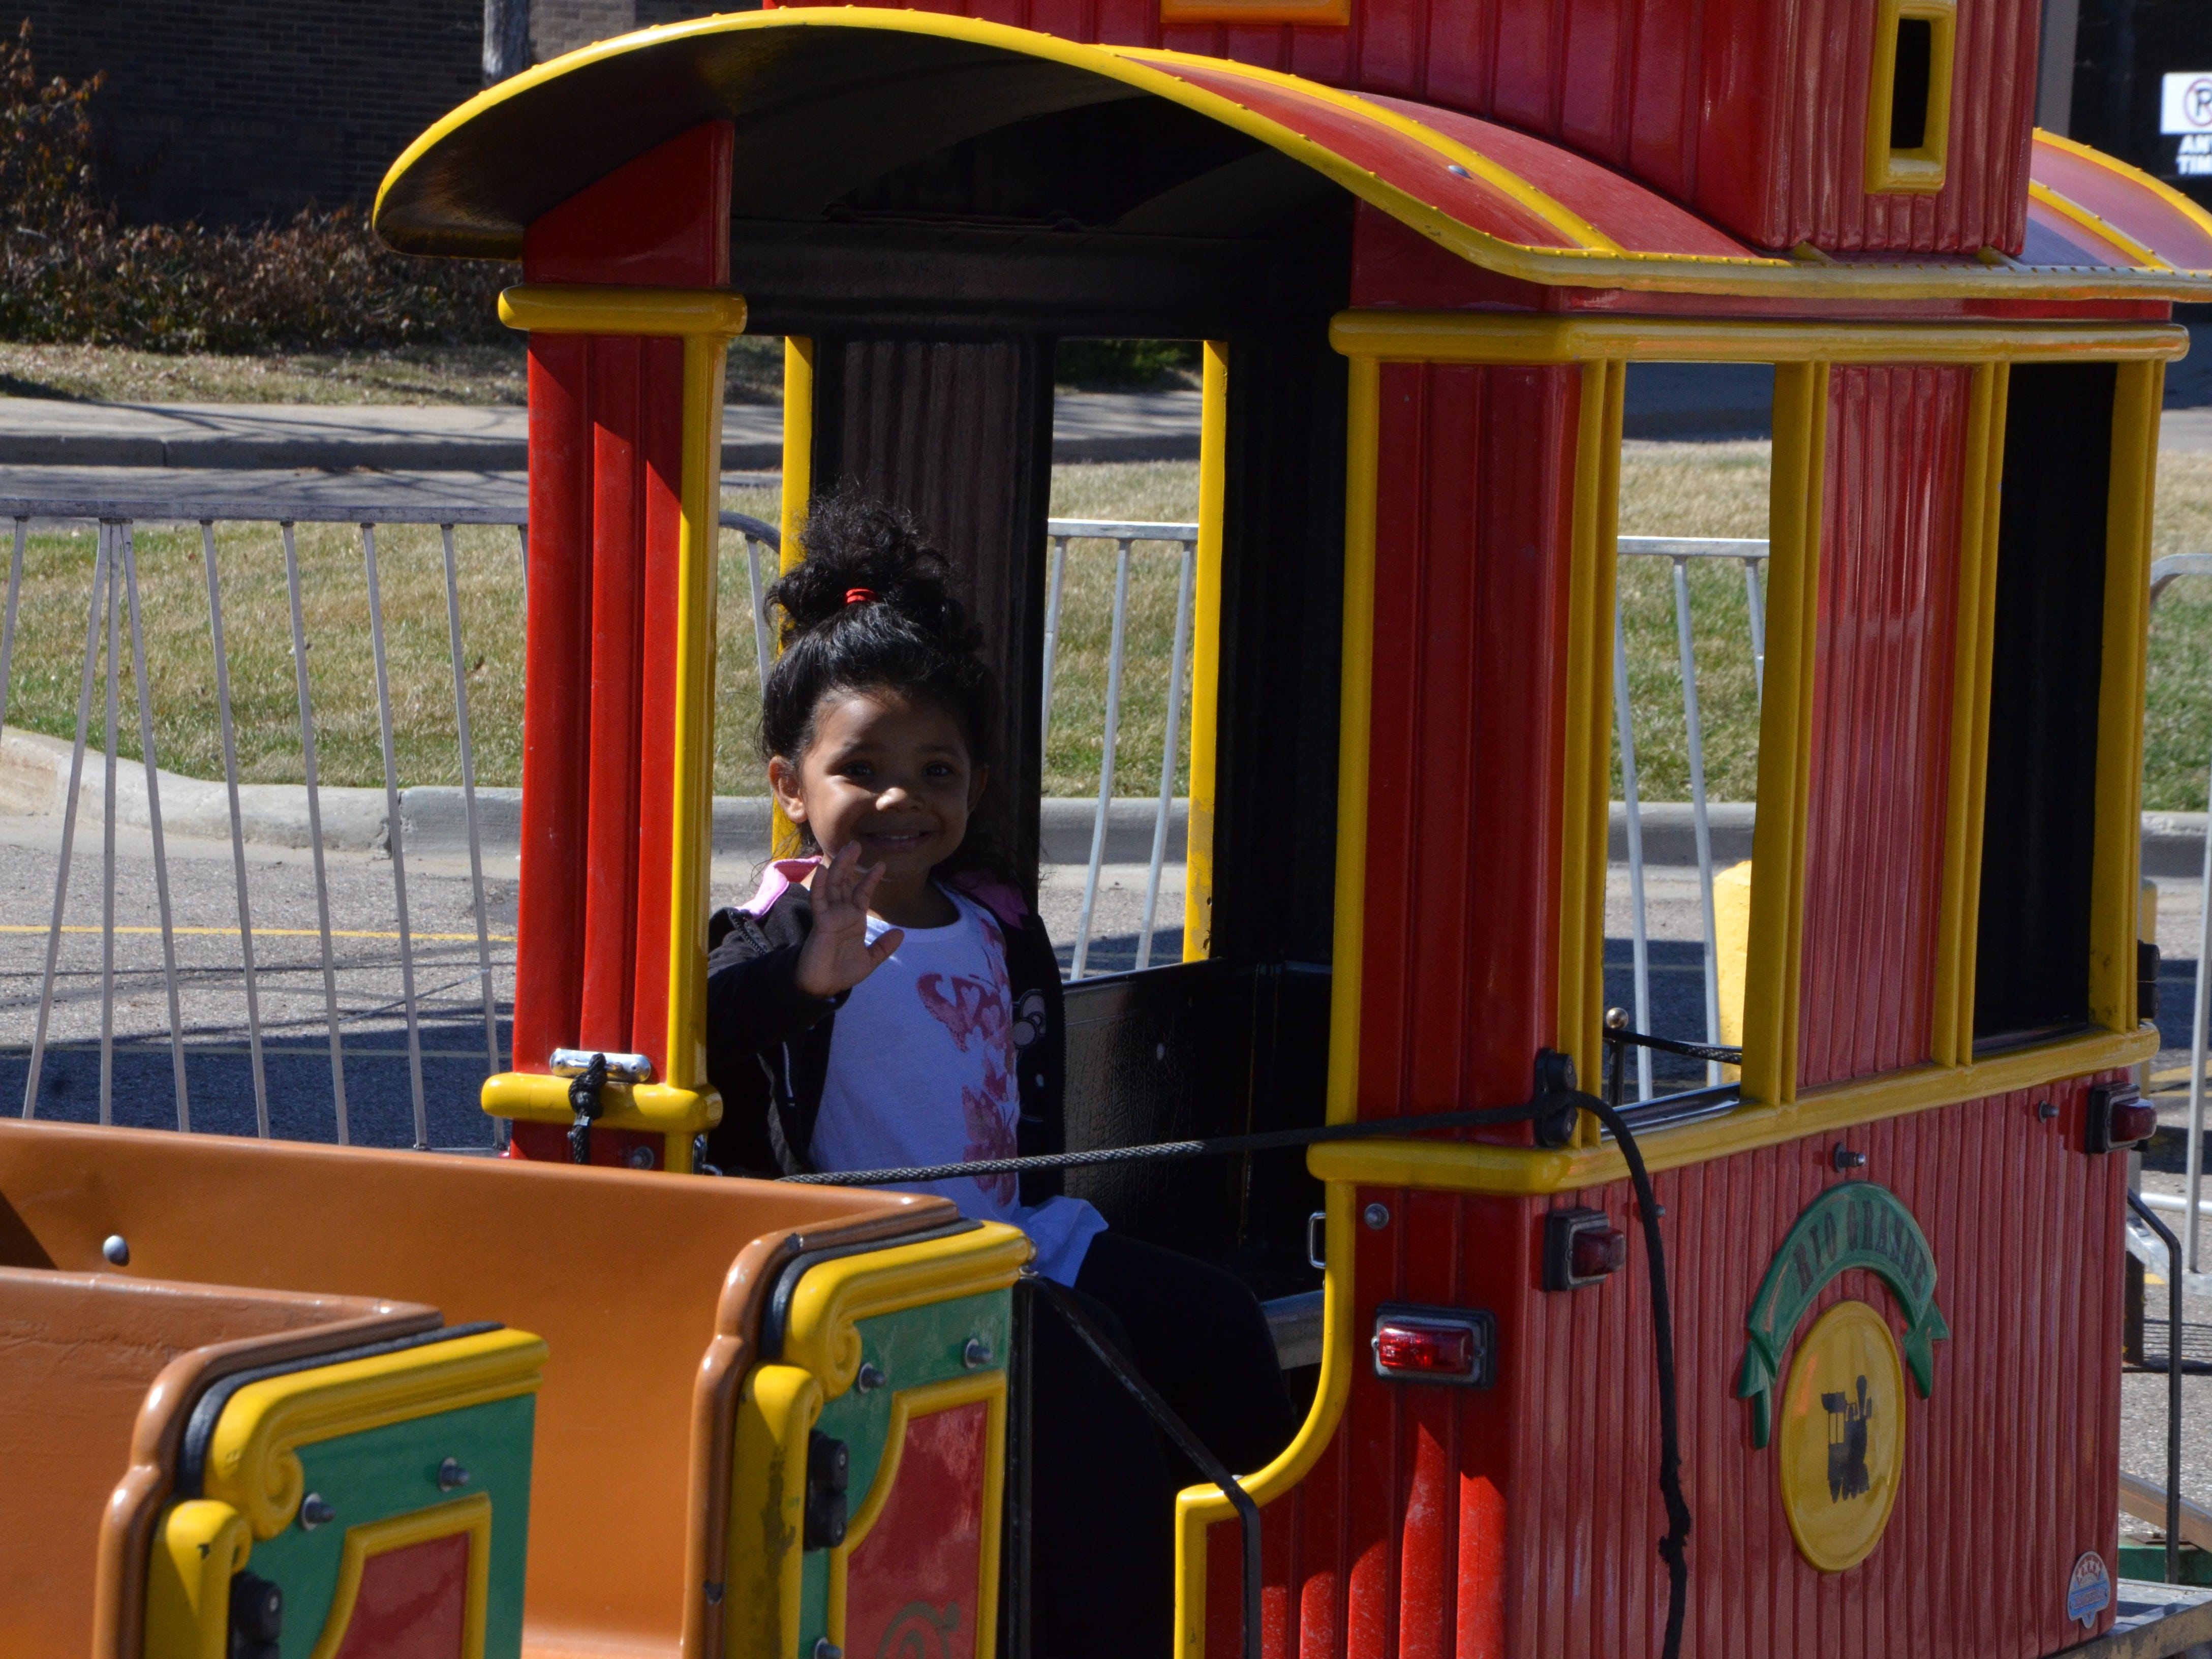 Alanna Williams, 3, rides the miniature train at the Family Fun Tyme Amusements in the parking lot of Lakeview Square Mall on Monday, April 8, 2019.